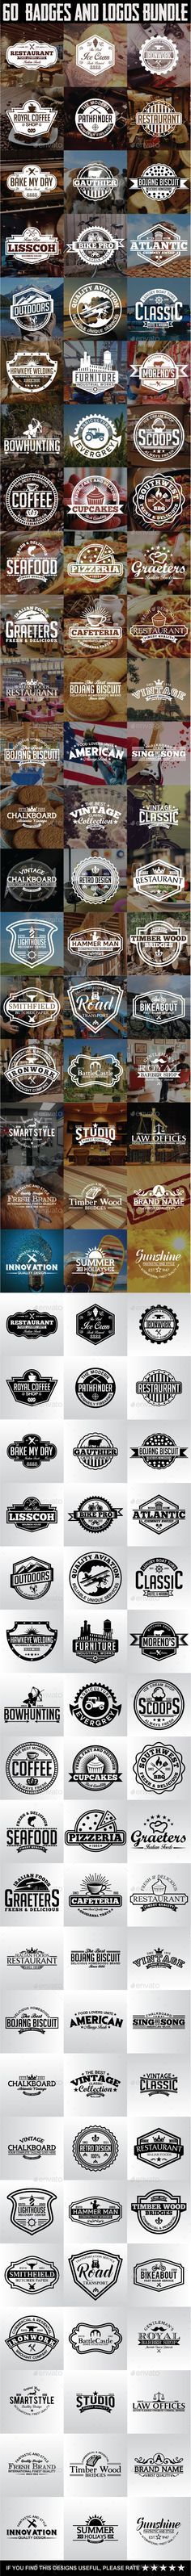 60 Badges and Logos Bundle #design Download: http://graphicriver.net/item/60-badges-and-logos-bundle/12167118?ref=ksioks